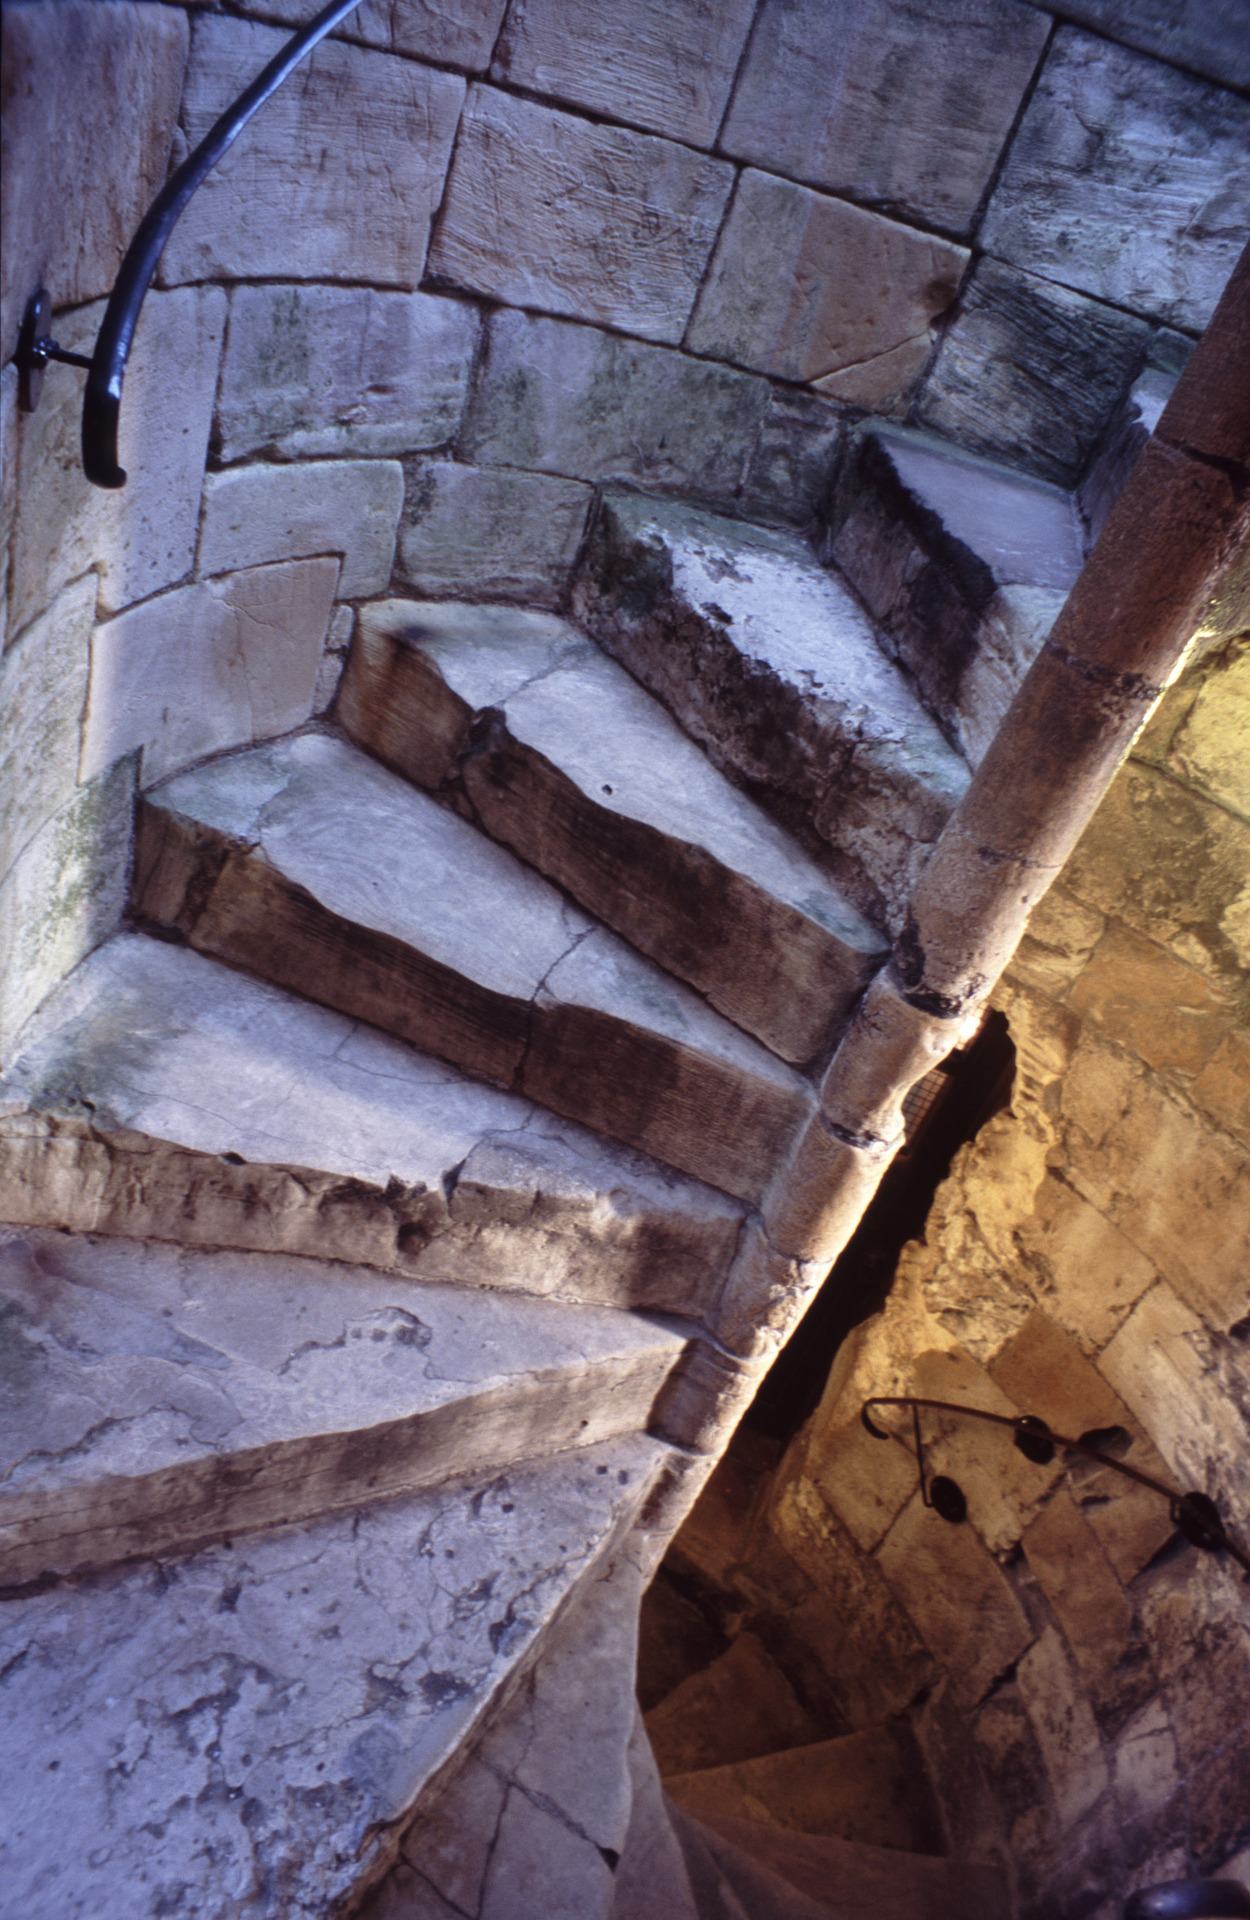 mediumaevum:  Stairs in medieval fortifications were constructed to contain trick or stumble steps. These were steps that had different rise height or thread depth from the rest and would cause anyone running up the stairs to stumble or fall, so slowing down the attackers' progress.   XD